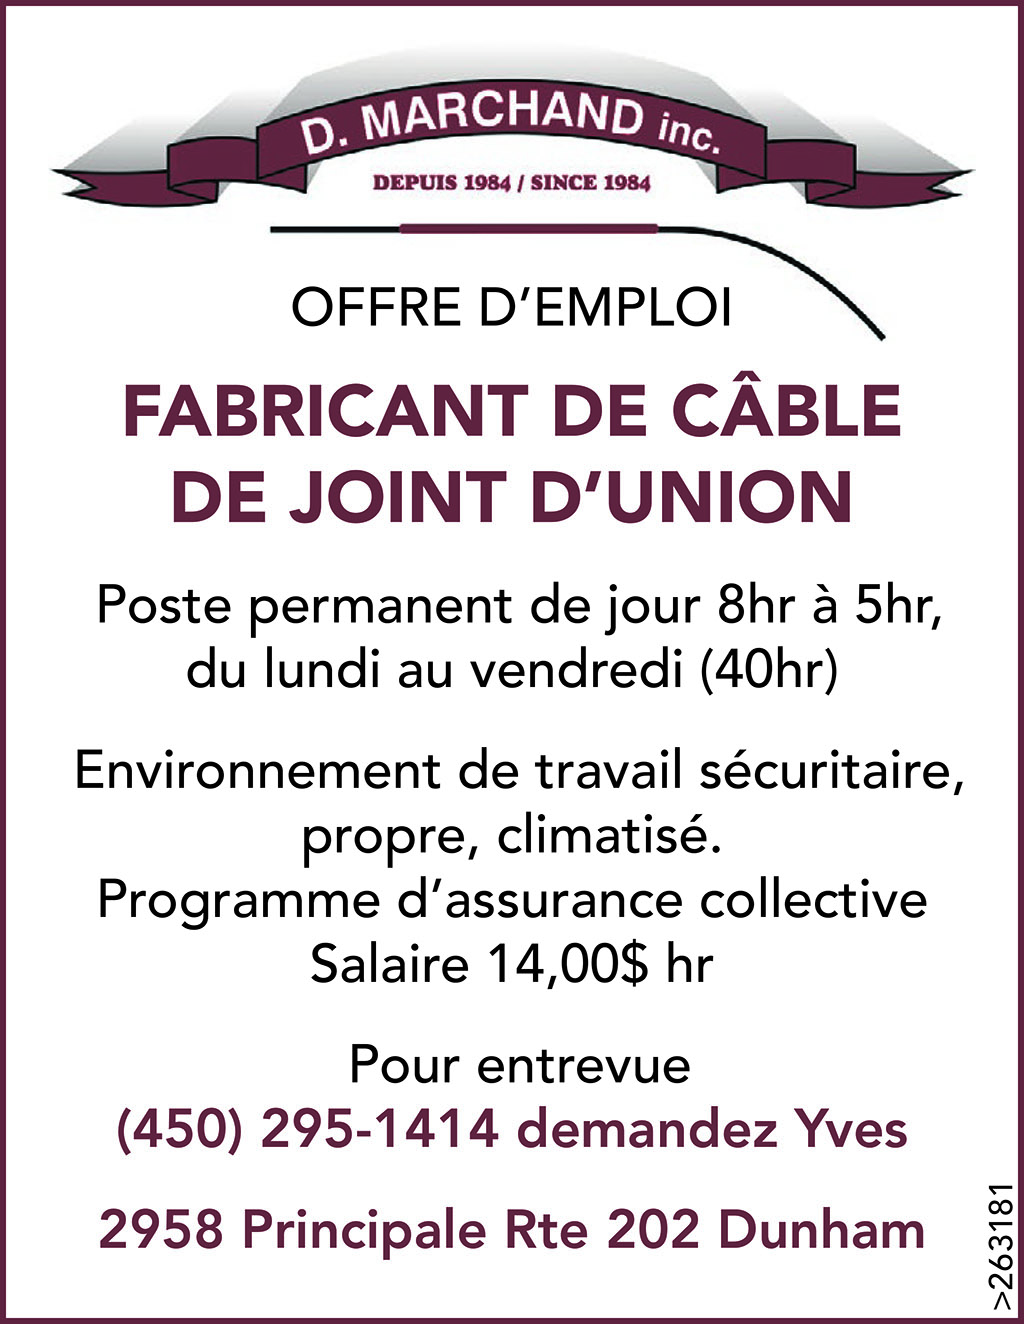 FABRICANT DE CÂBLE DE JOINT D'UNION